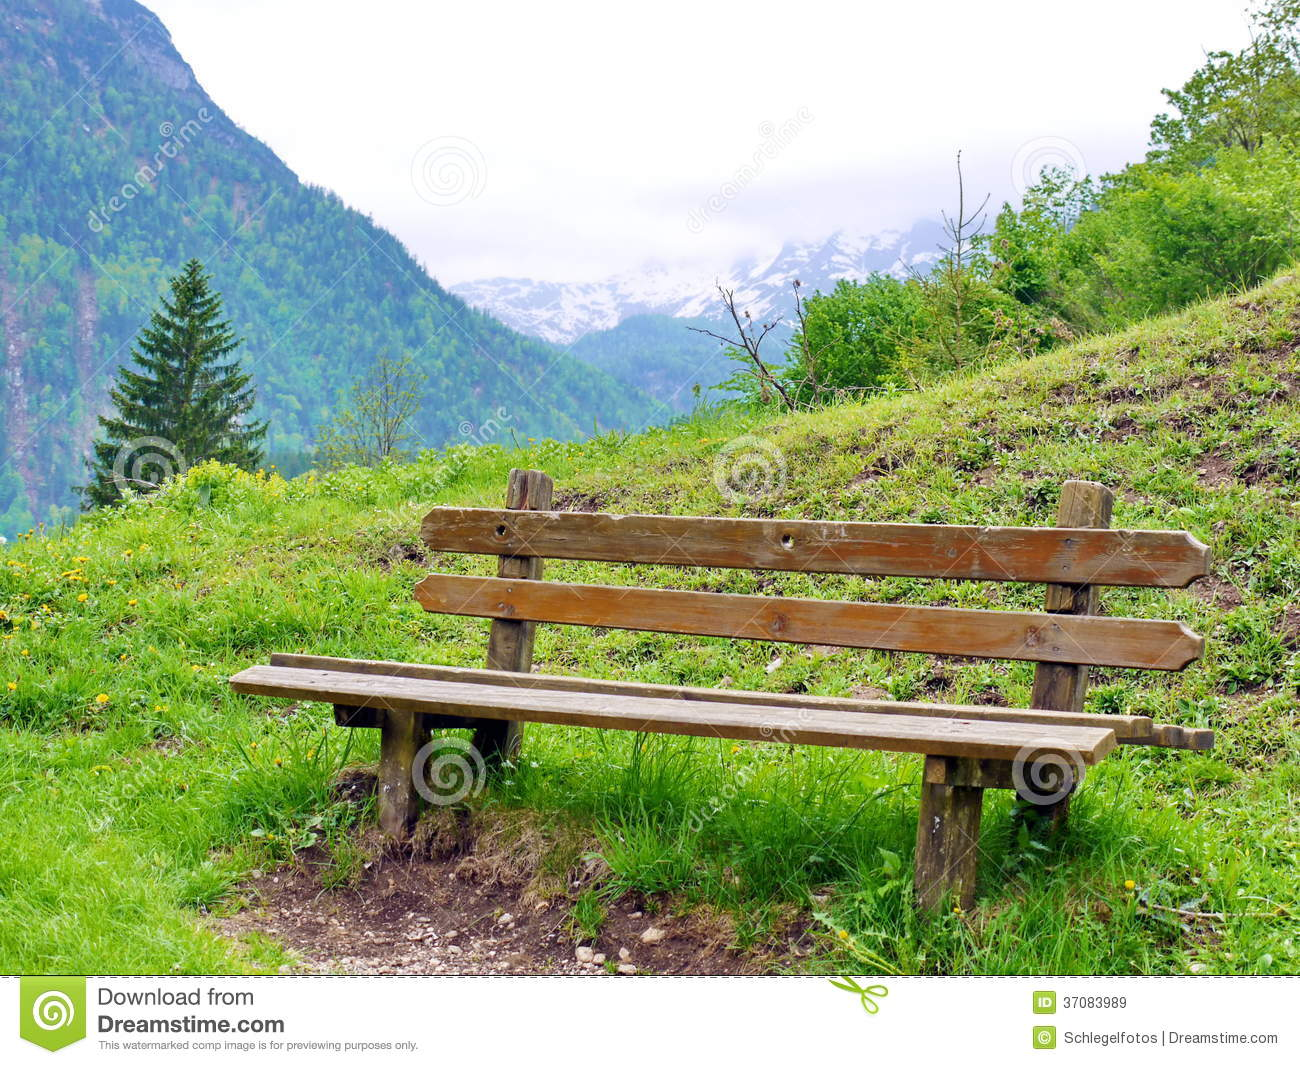 Park Bench In Nature Stock Image. Image Of Nature, Empty